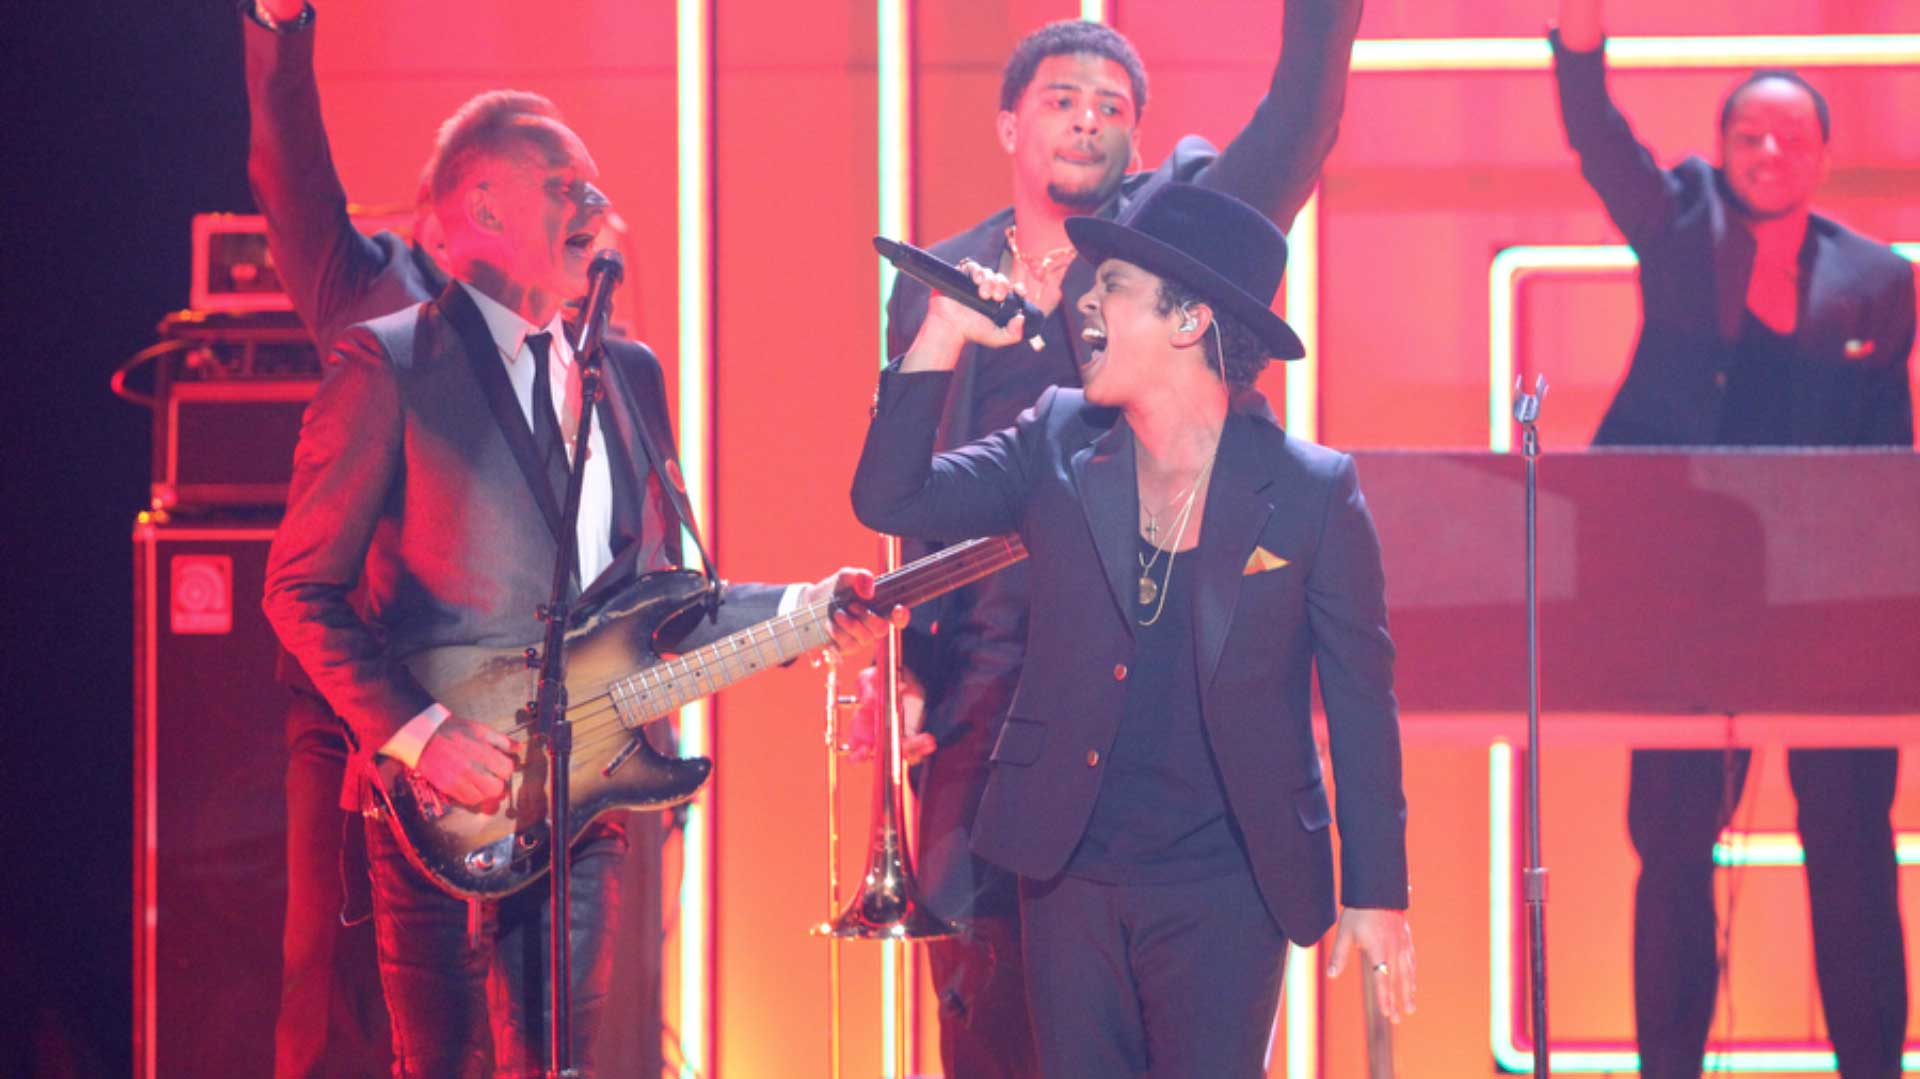 Sting and Bruno Mars perform